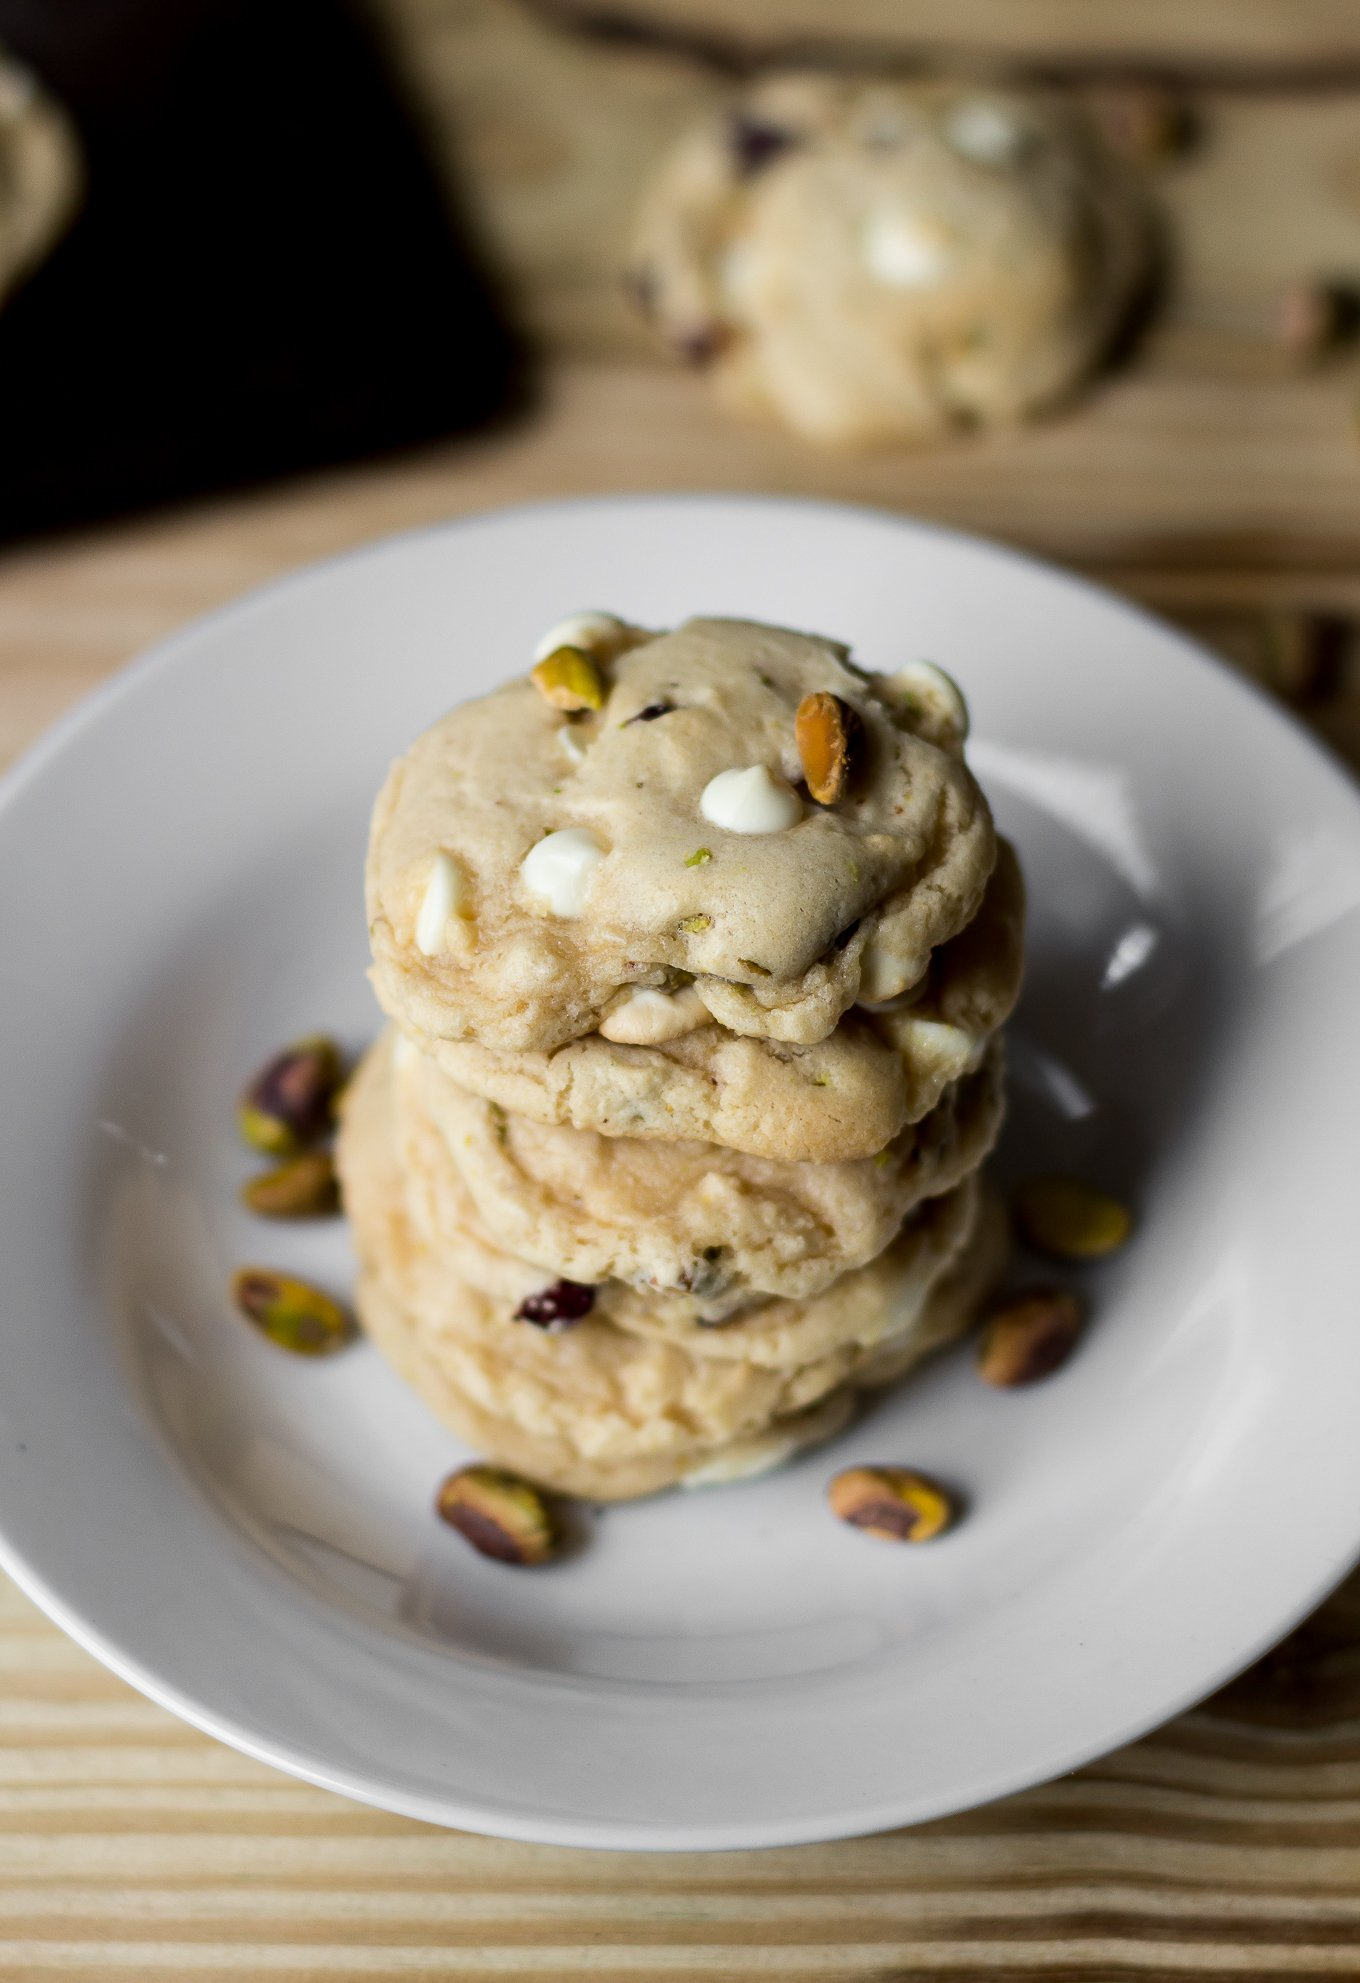 ... -pistachio-day-white-chocolate-chip-cranberry-pistachio-cookies.jpg